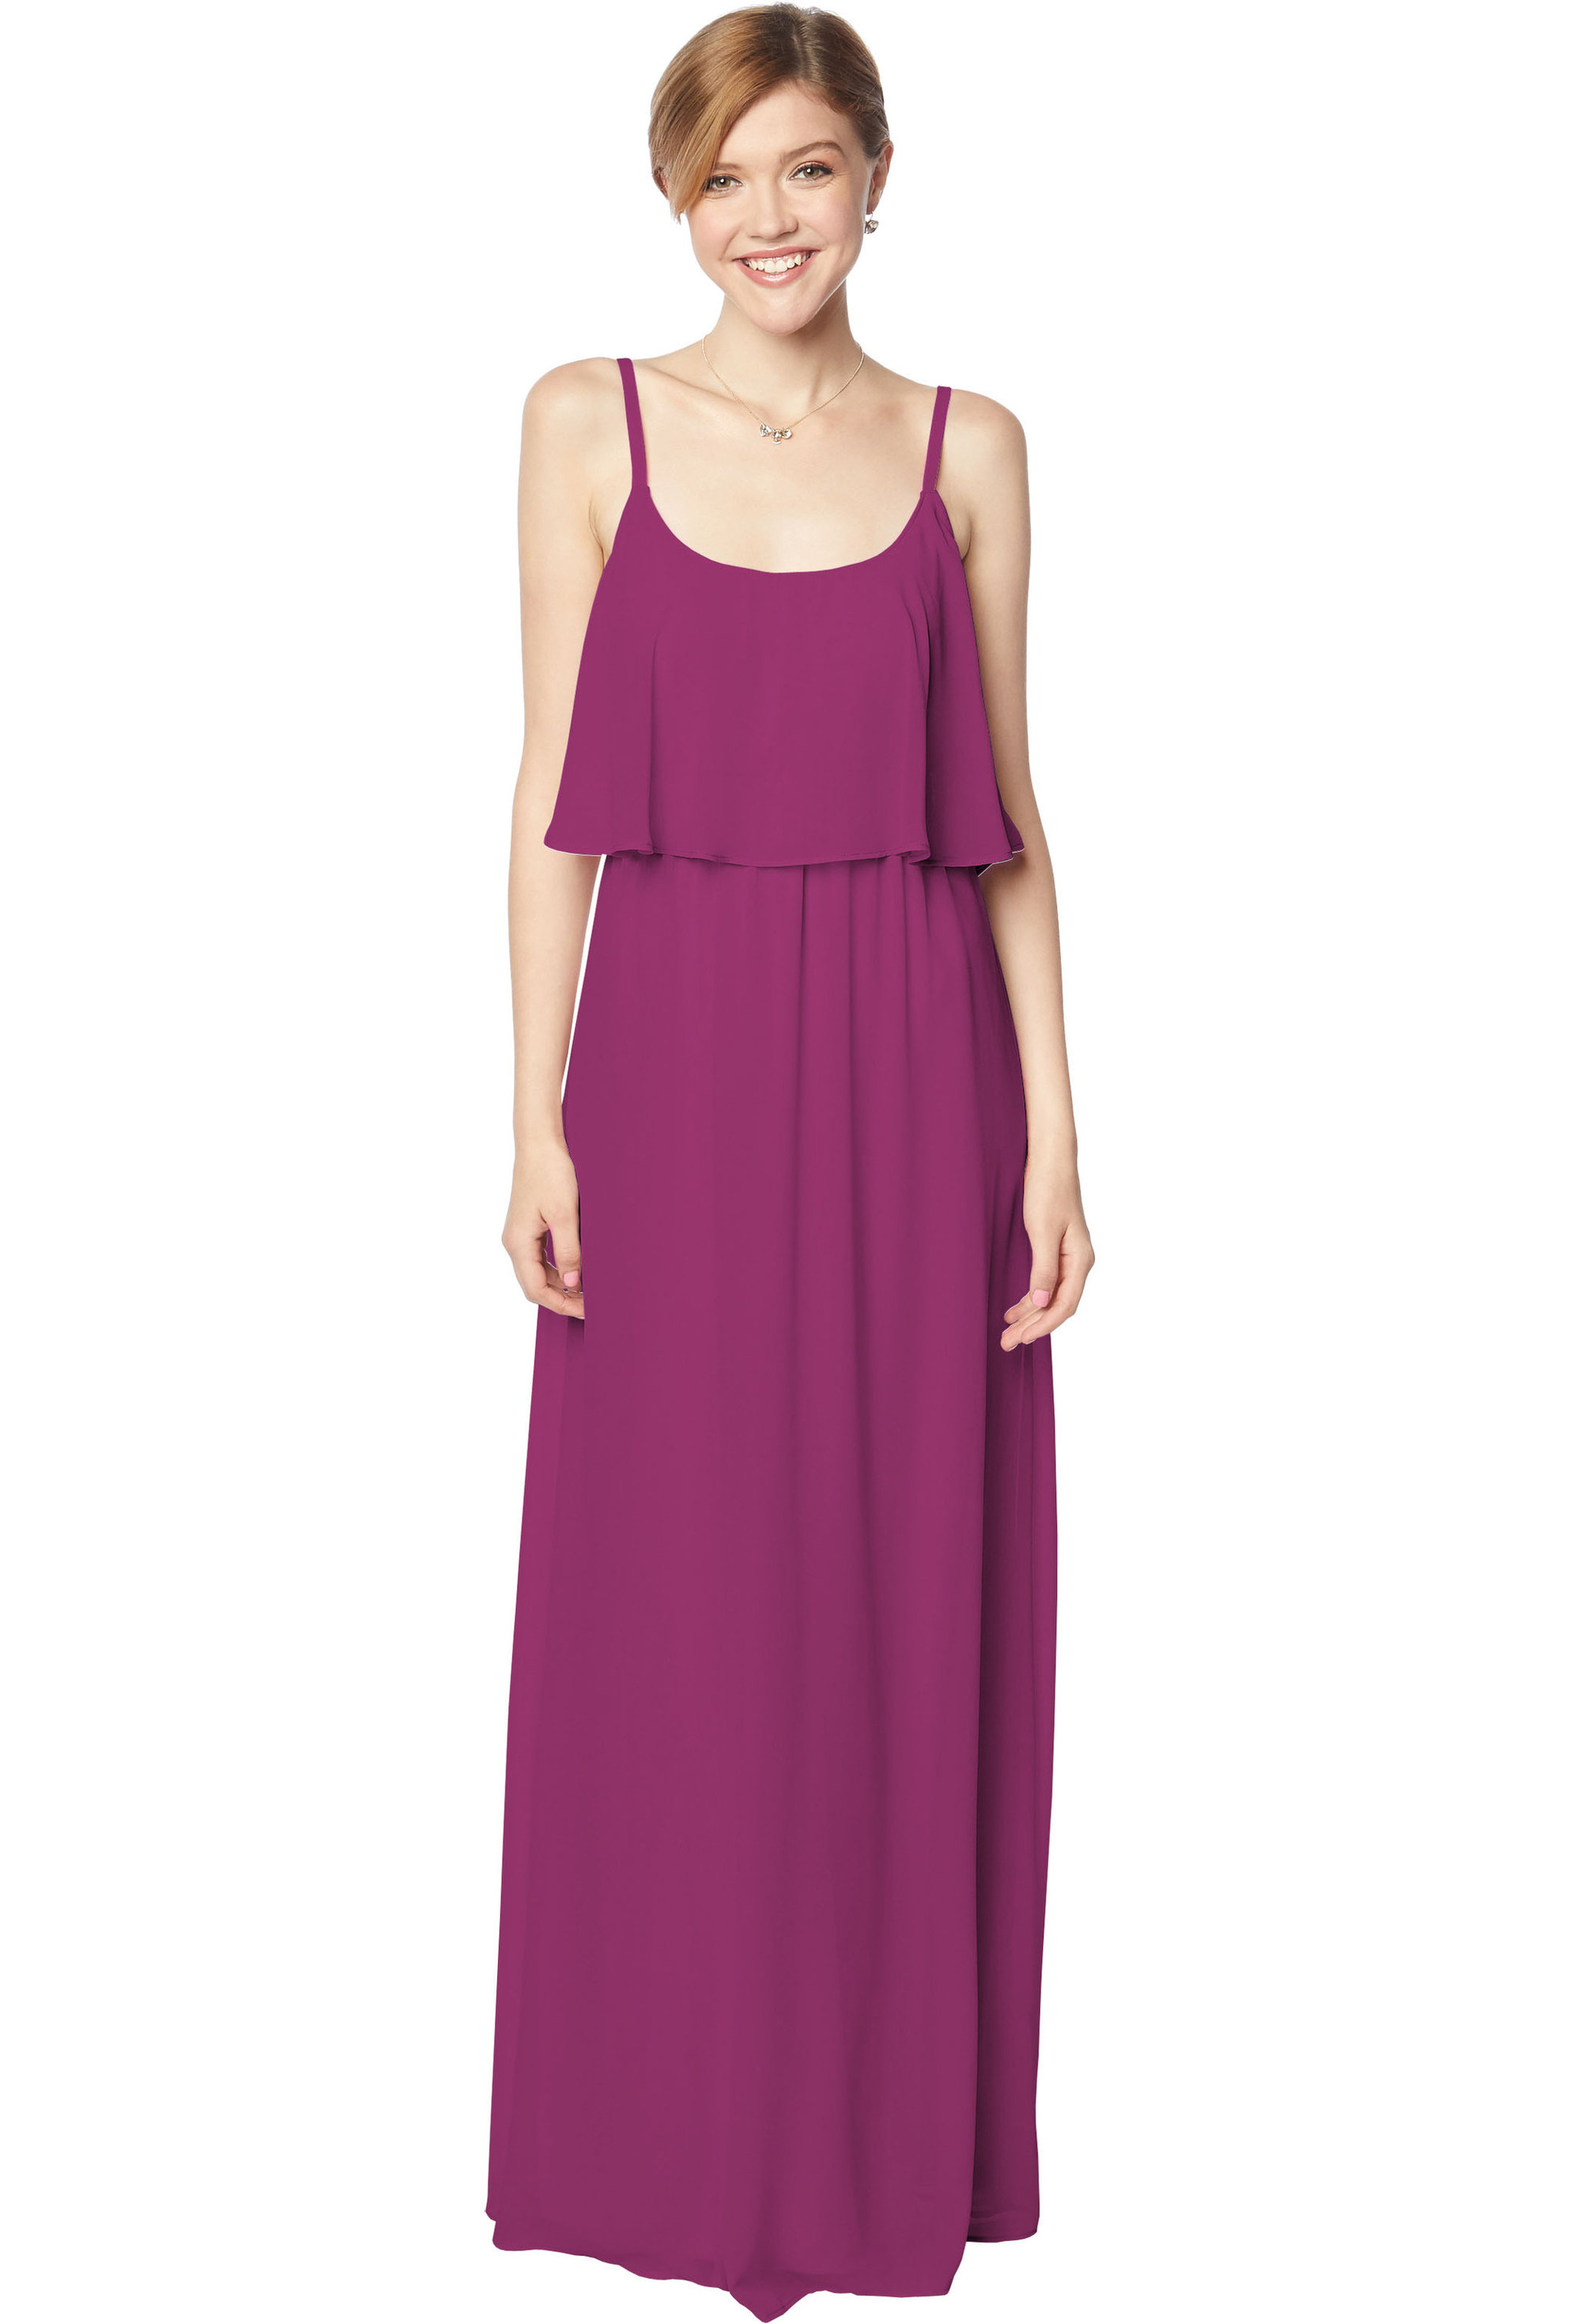 Bill Levkoff SANGRIA Chiffon Scoop A-line gown, $170.00 Front